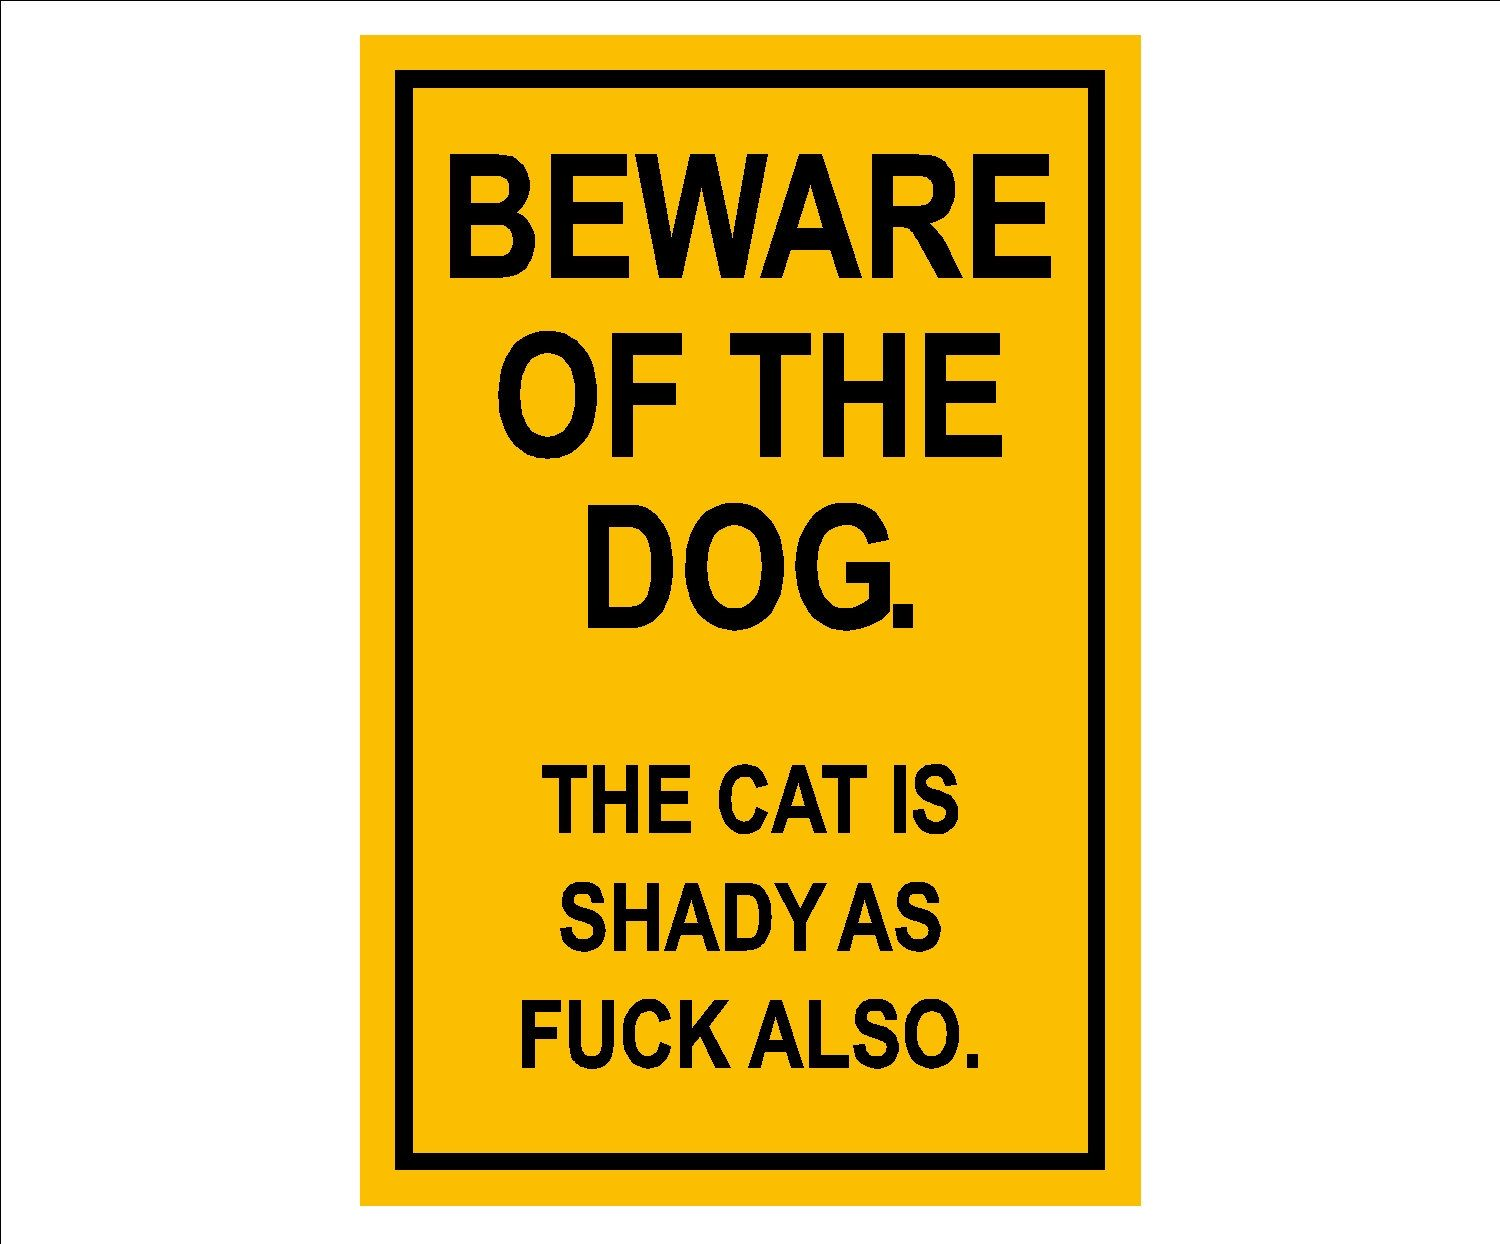 beware of the dog analysis